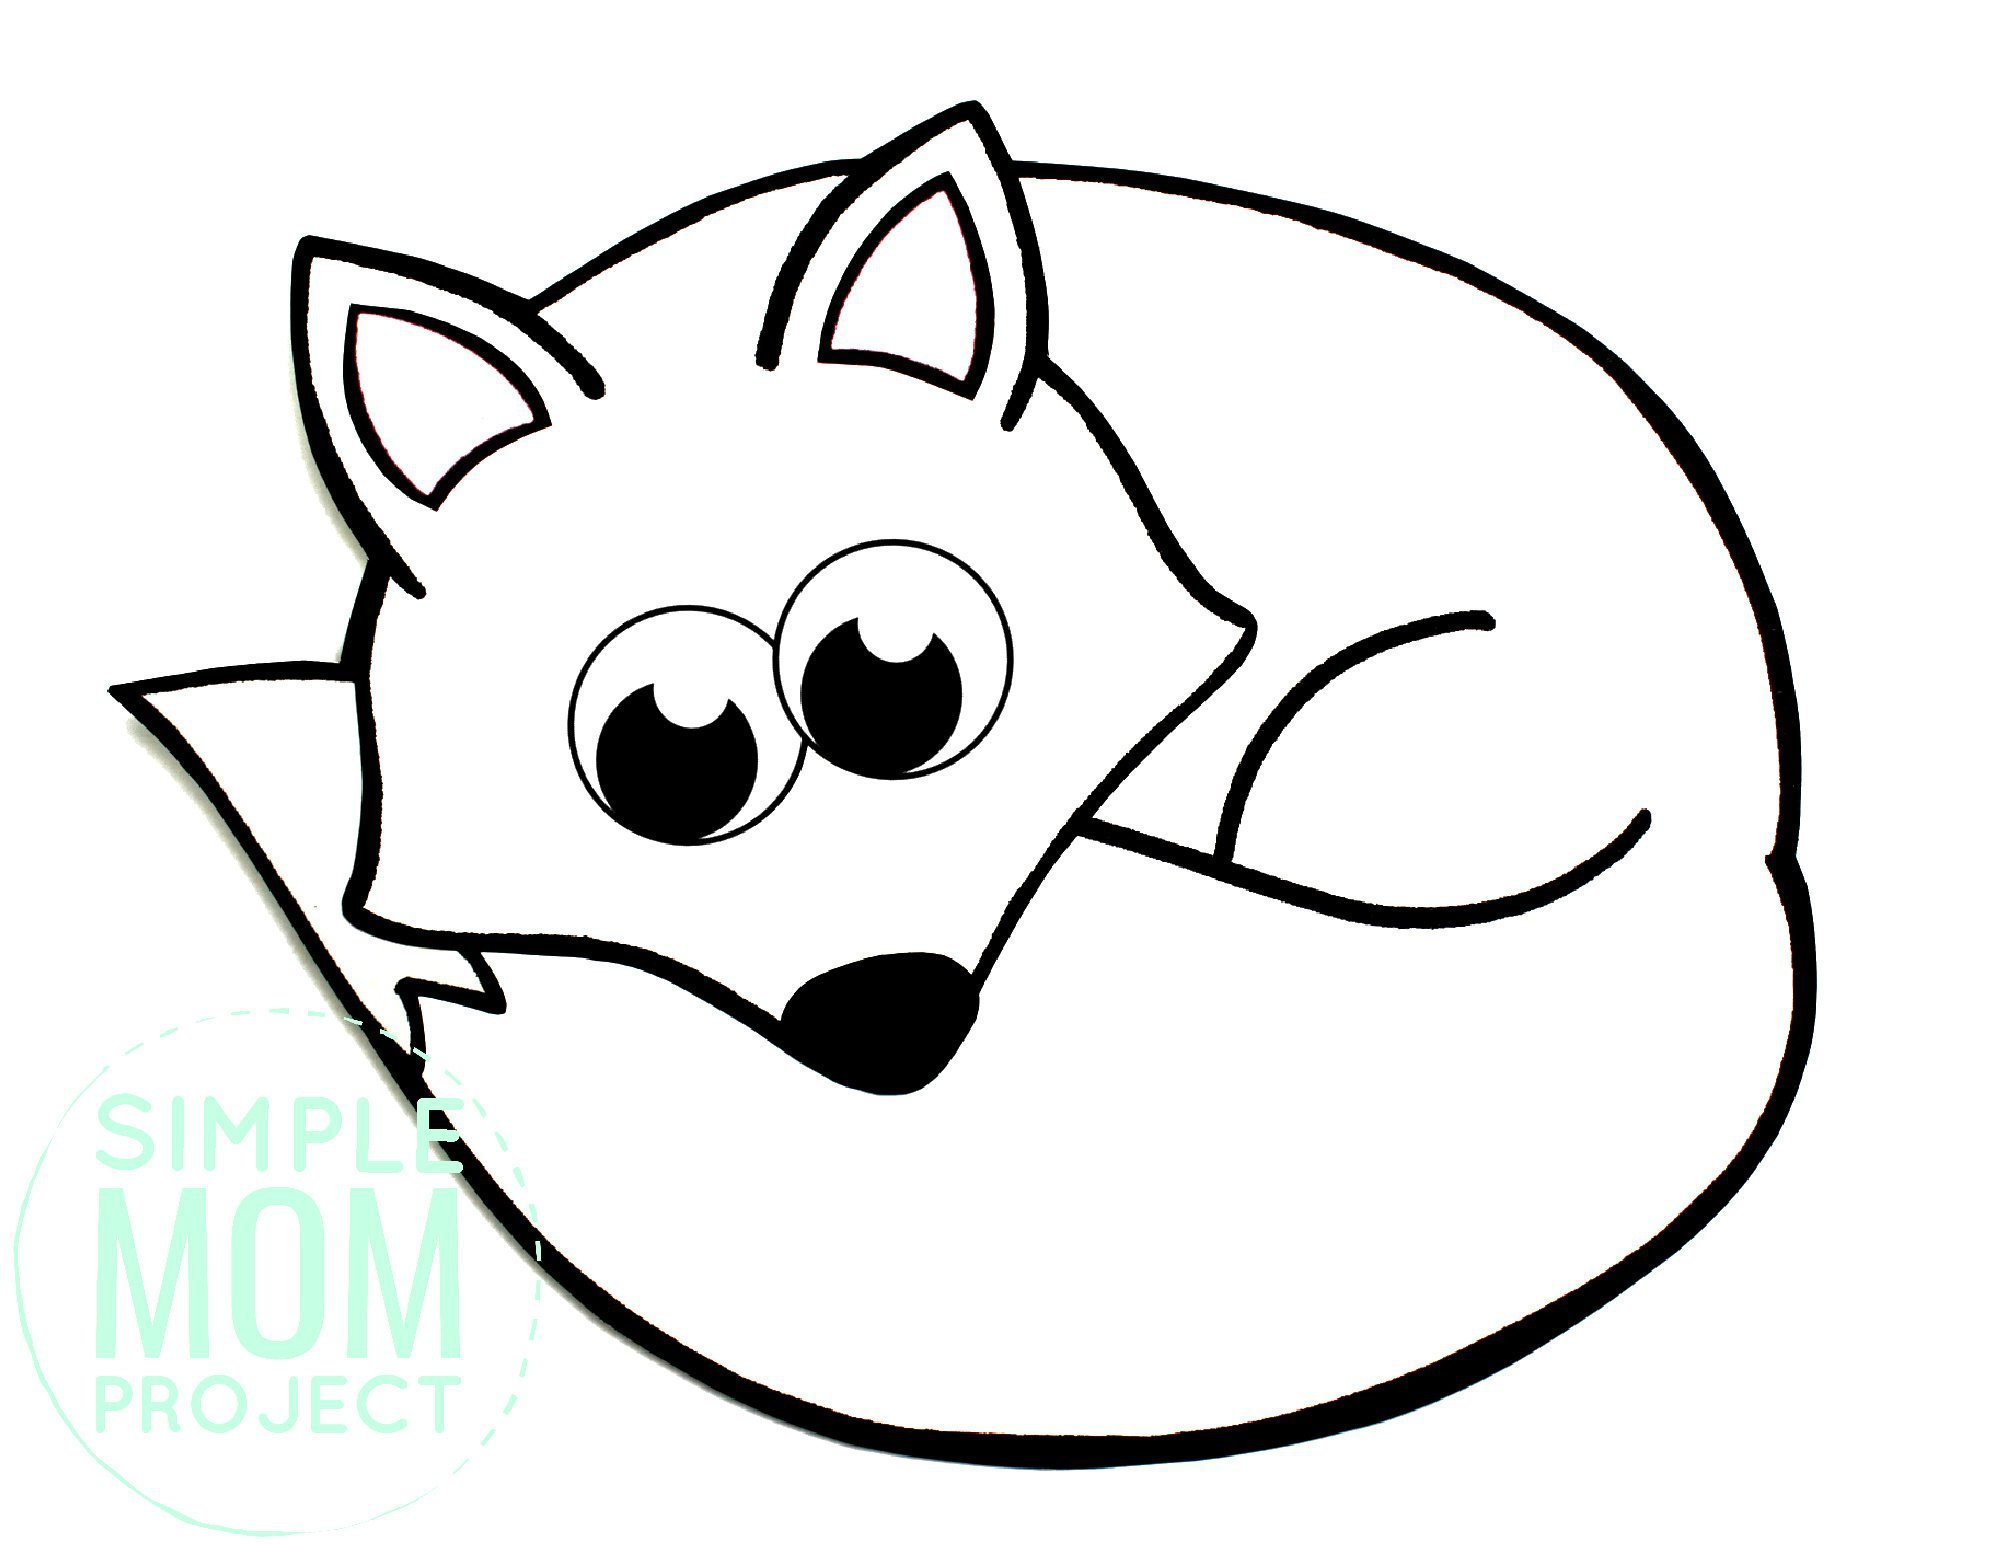 Free Printable Simple Arctic Animal Fox Coloring Page for kids preschoolers and toddlers